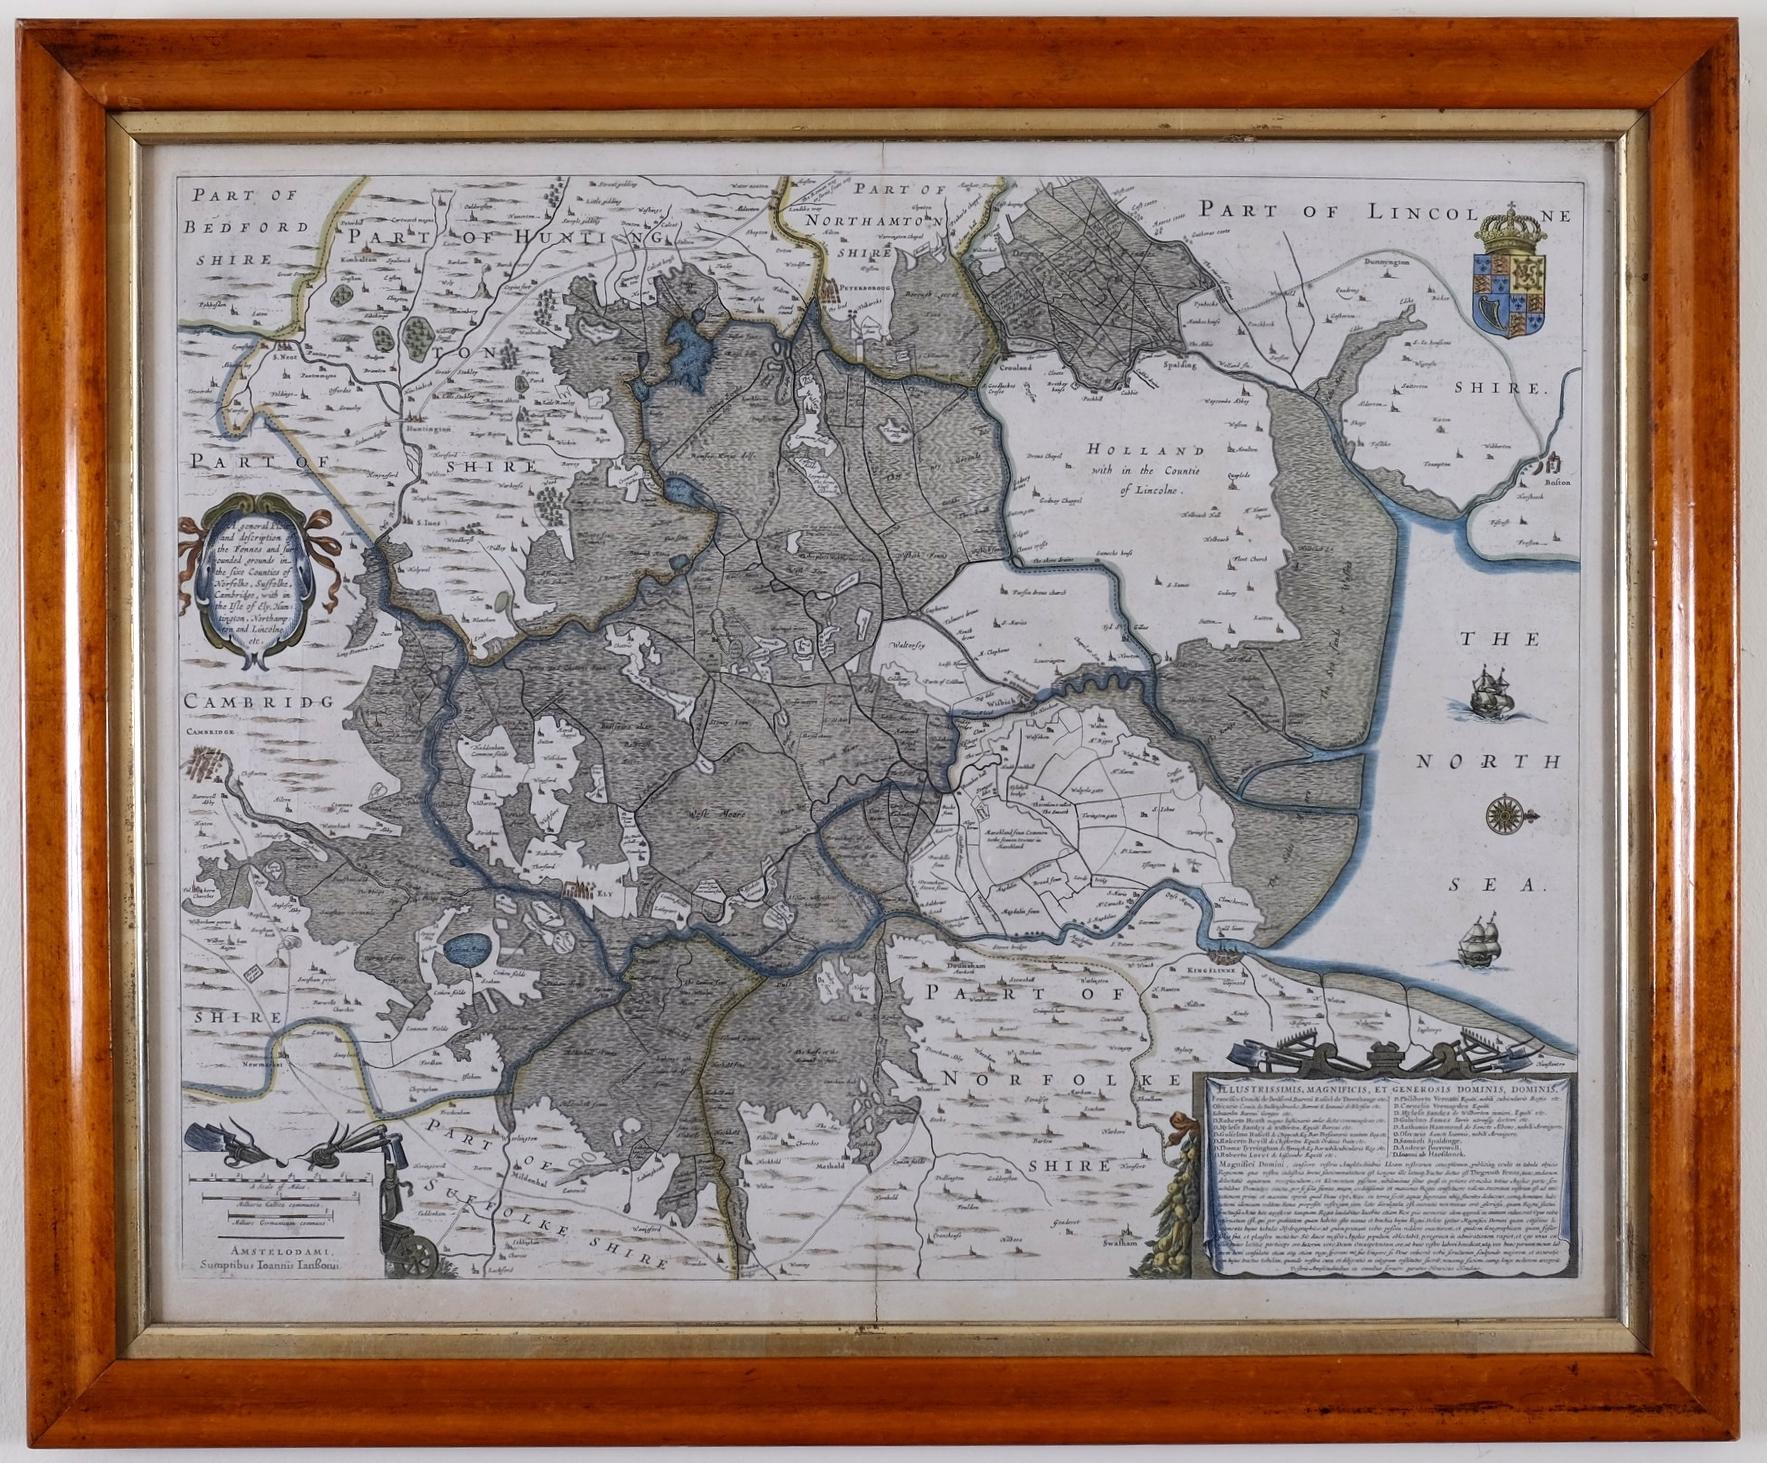 Antique Map of Lincoln & Norfolke Circa 1610